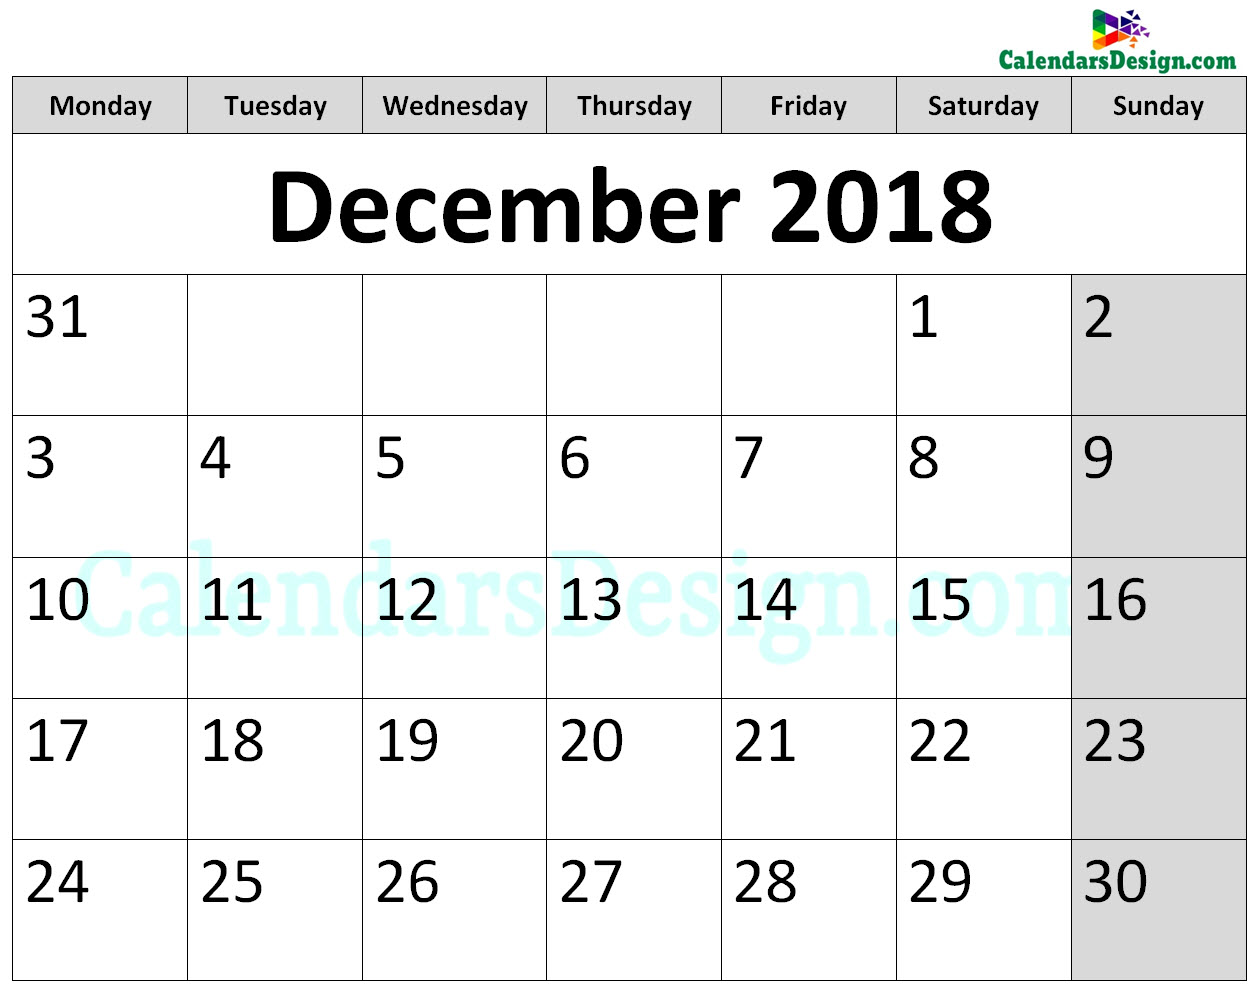 Printable Calendar for December 2018 Page